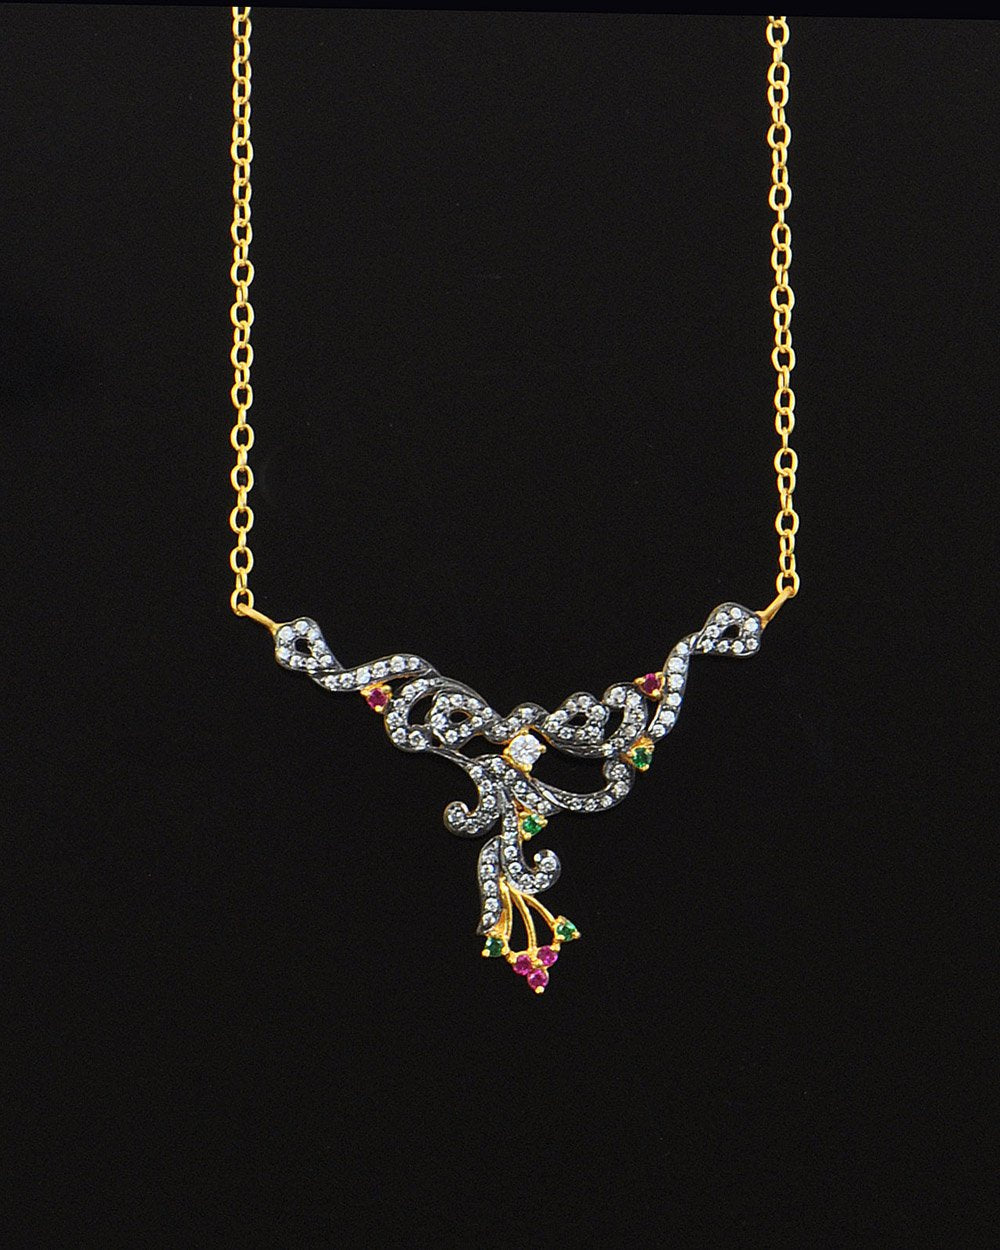 Colorful Peacock Crystal Necklace in Gold Vermeil